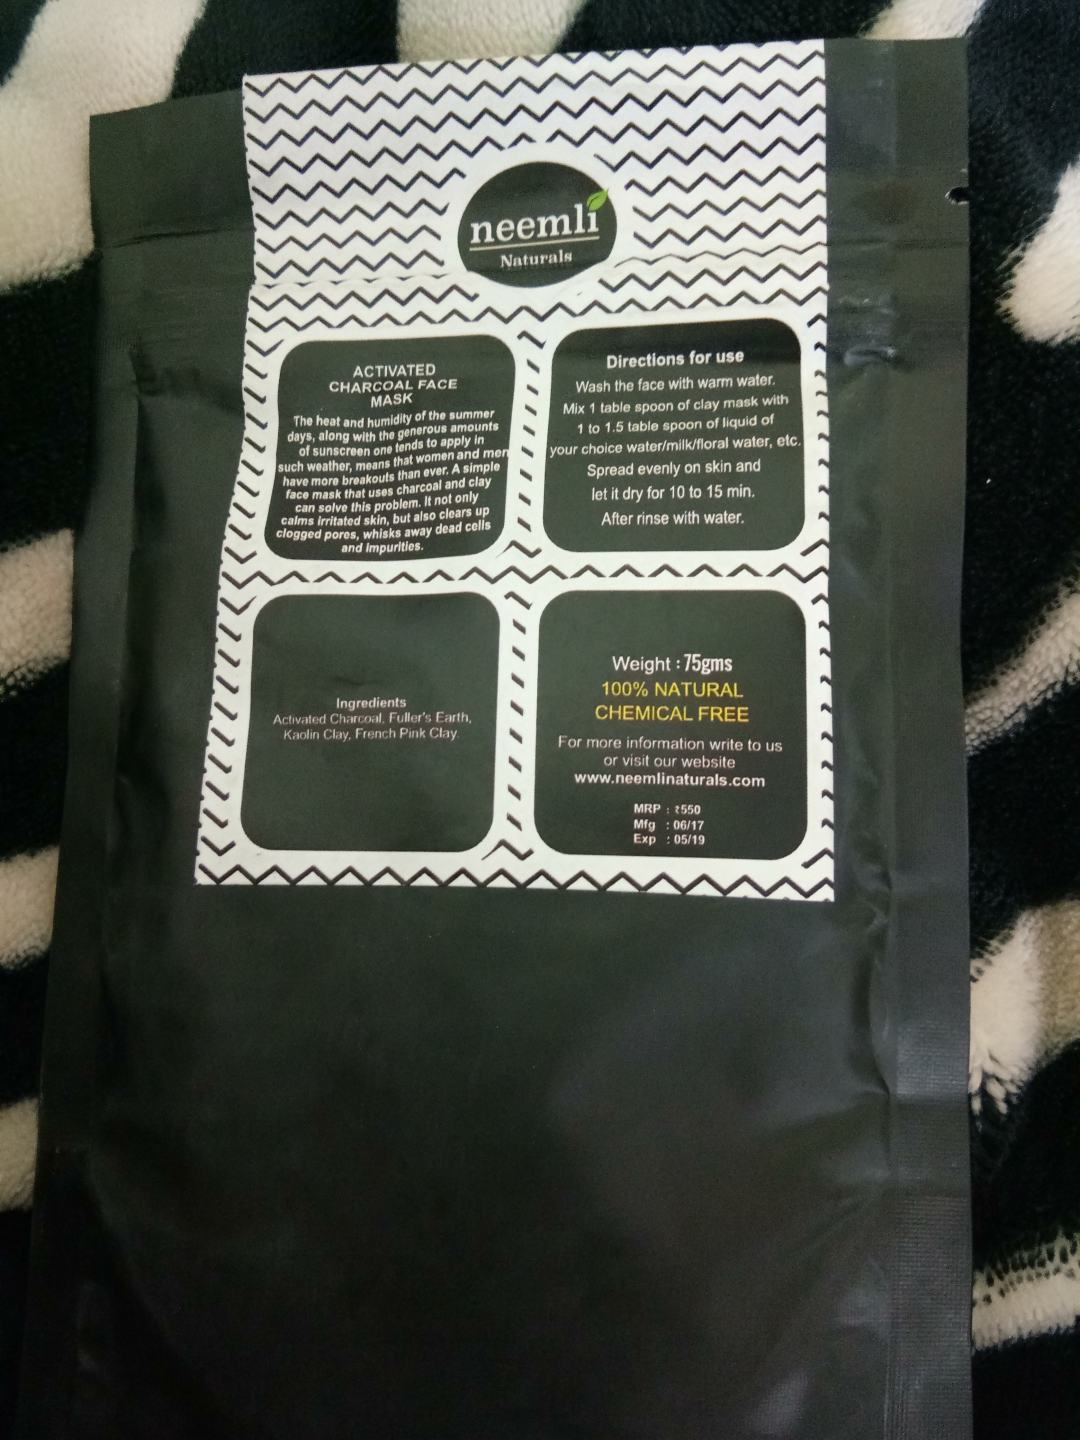 Neemli - Charcoal Face Pack in GlamEgo August 2017 Box